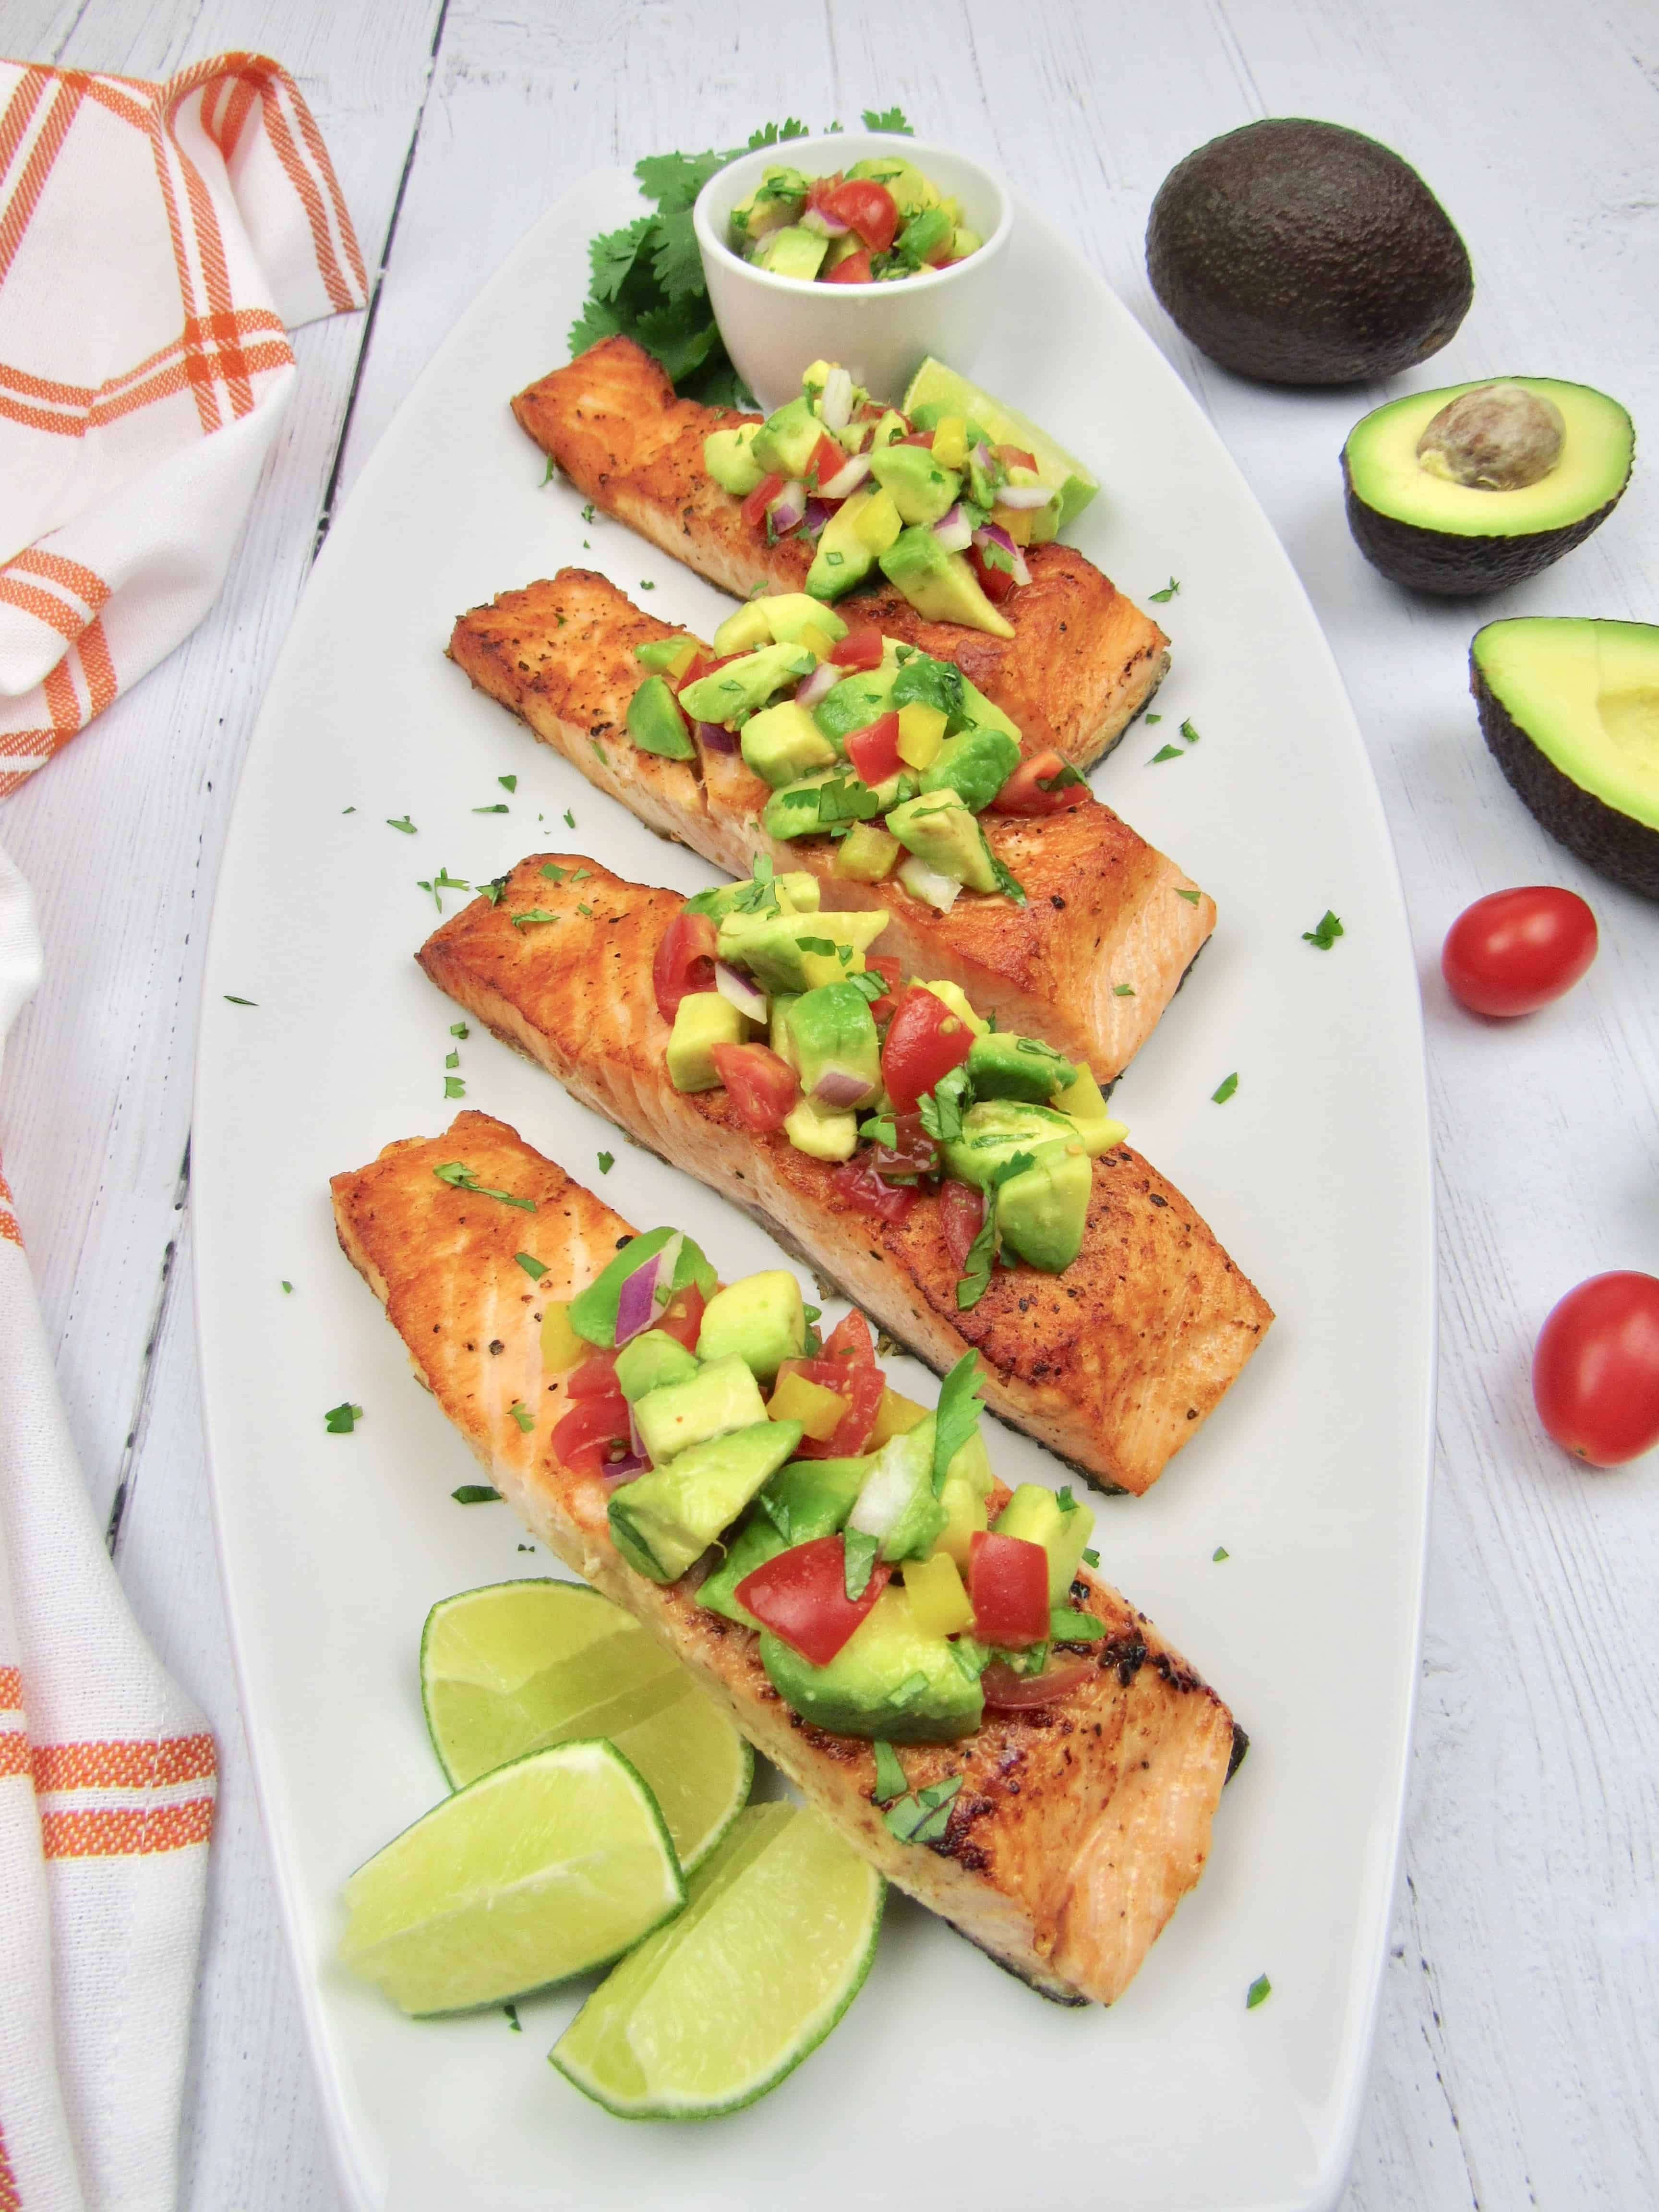 4 pieces salmon with avocado salsa over the top with lime wedges